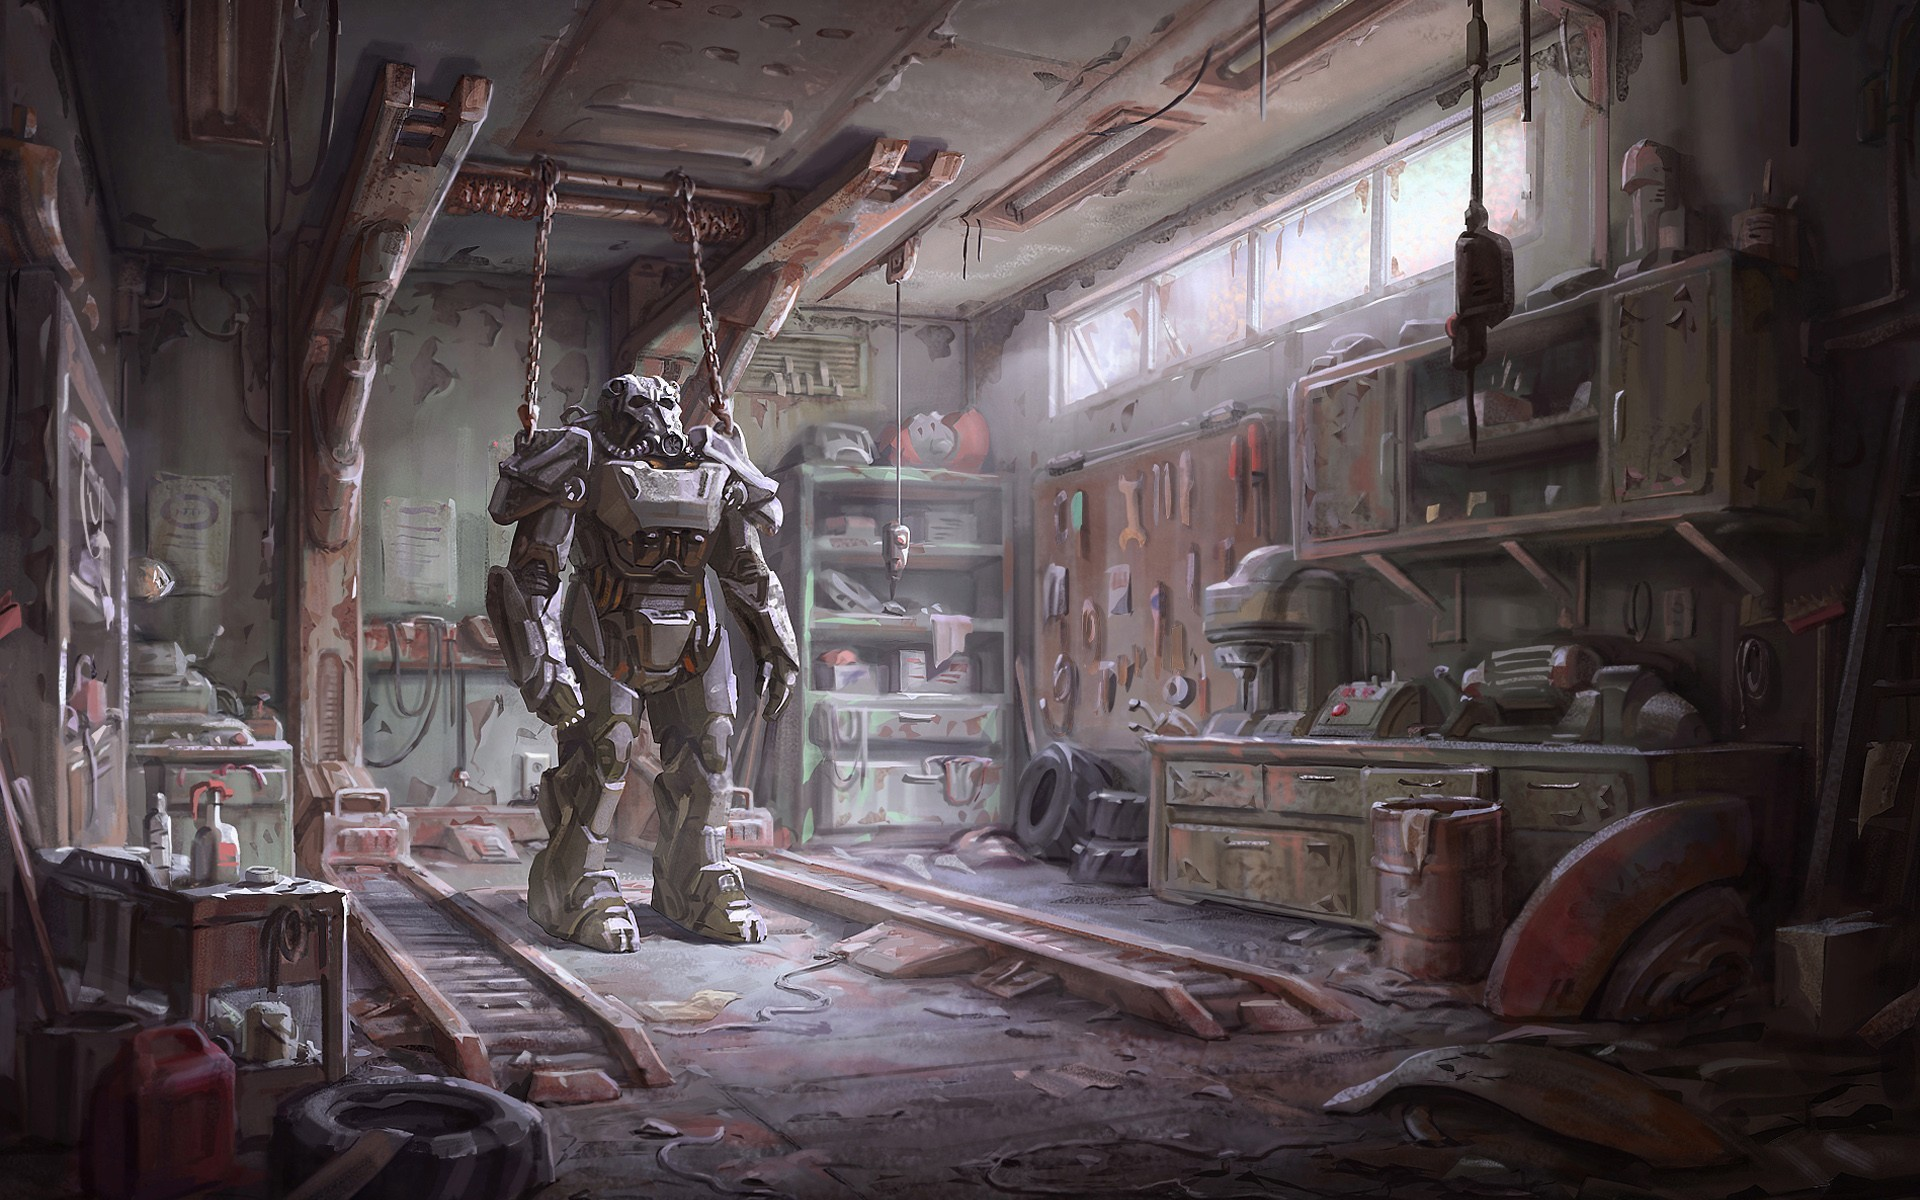 <b>Fallout 4</b>, Bethesda Softworks, Apocalyptic, Video